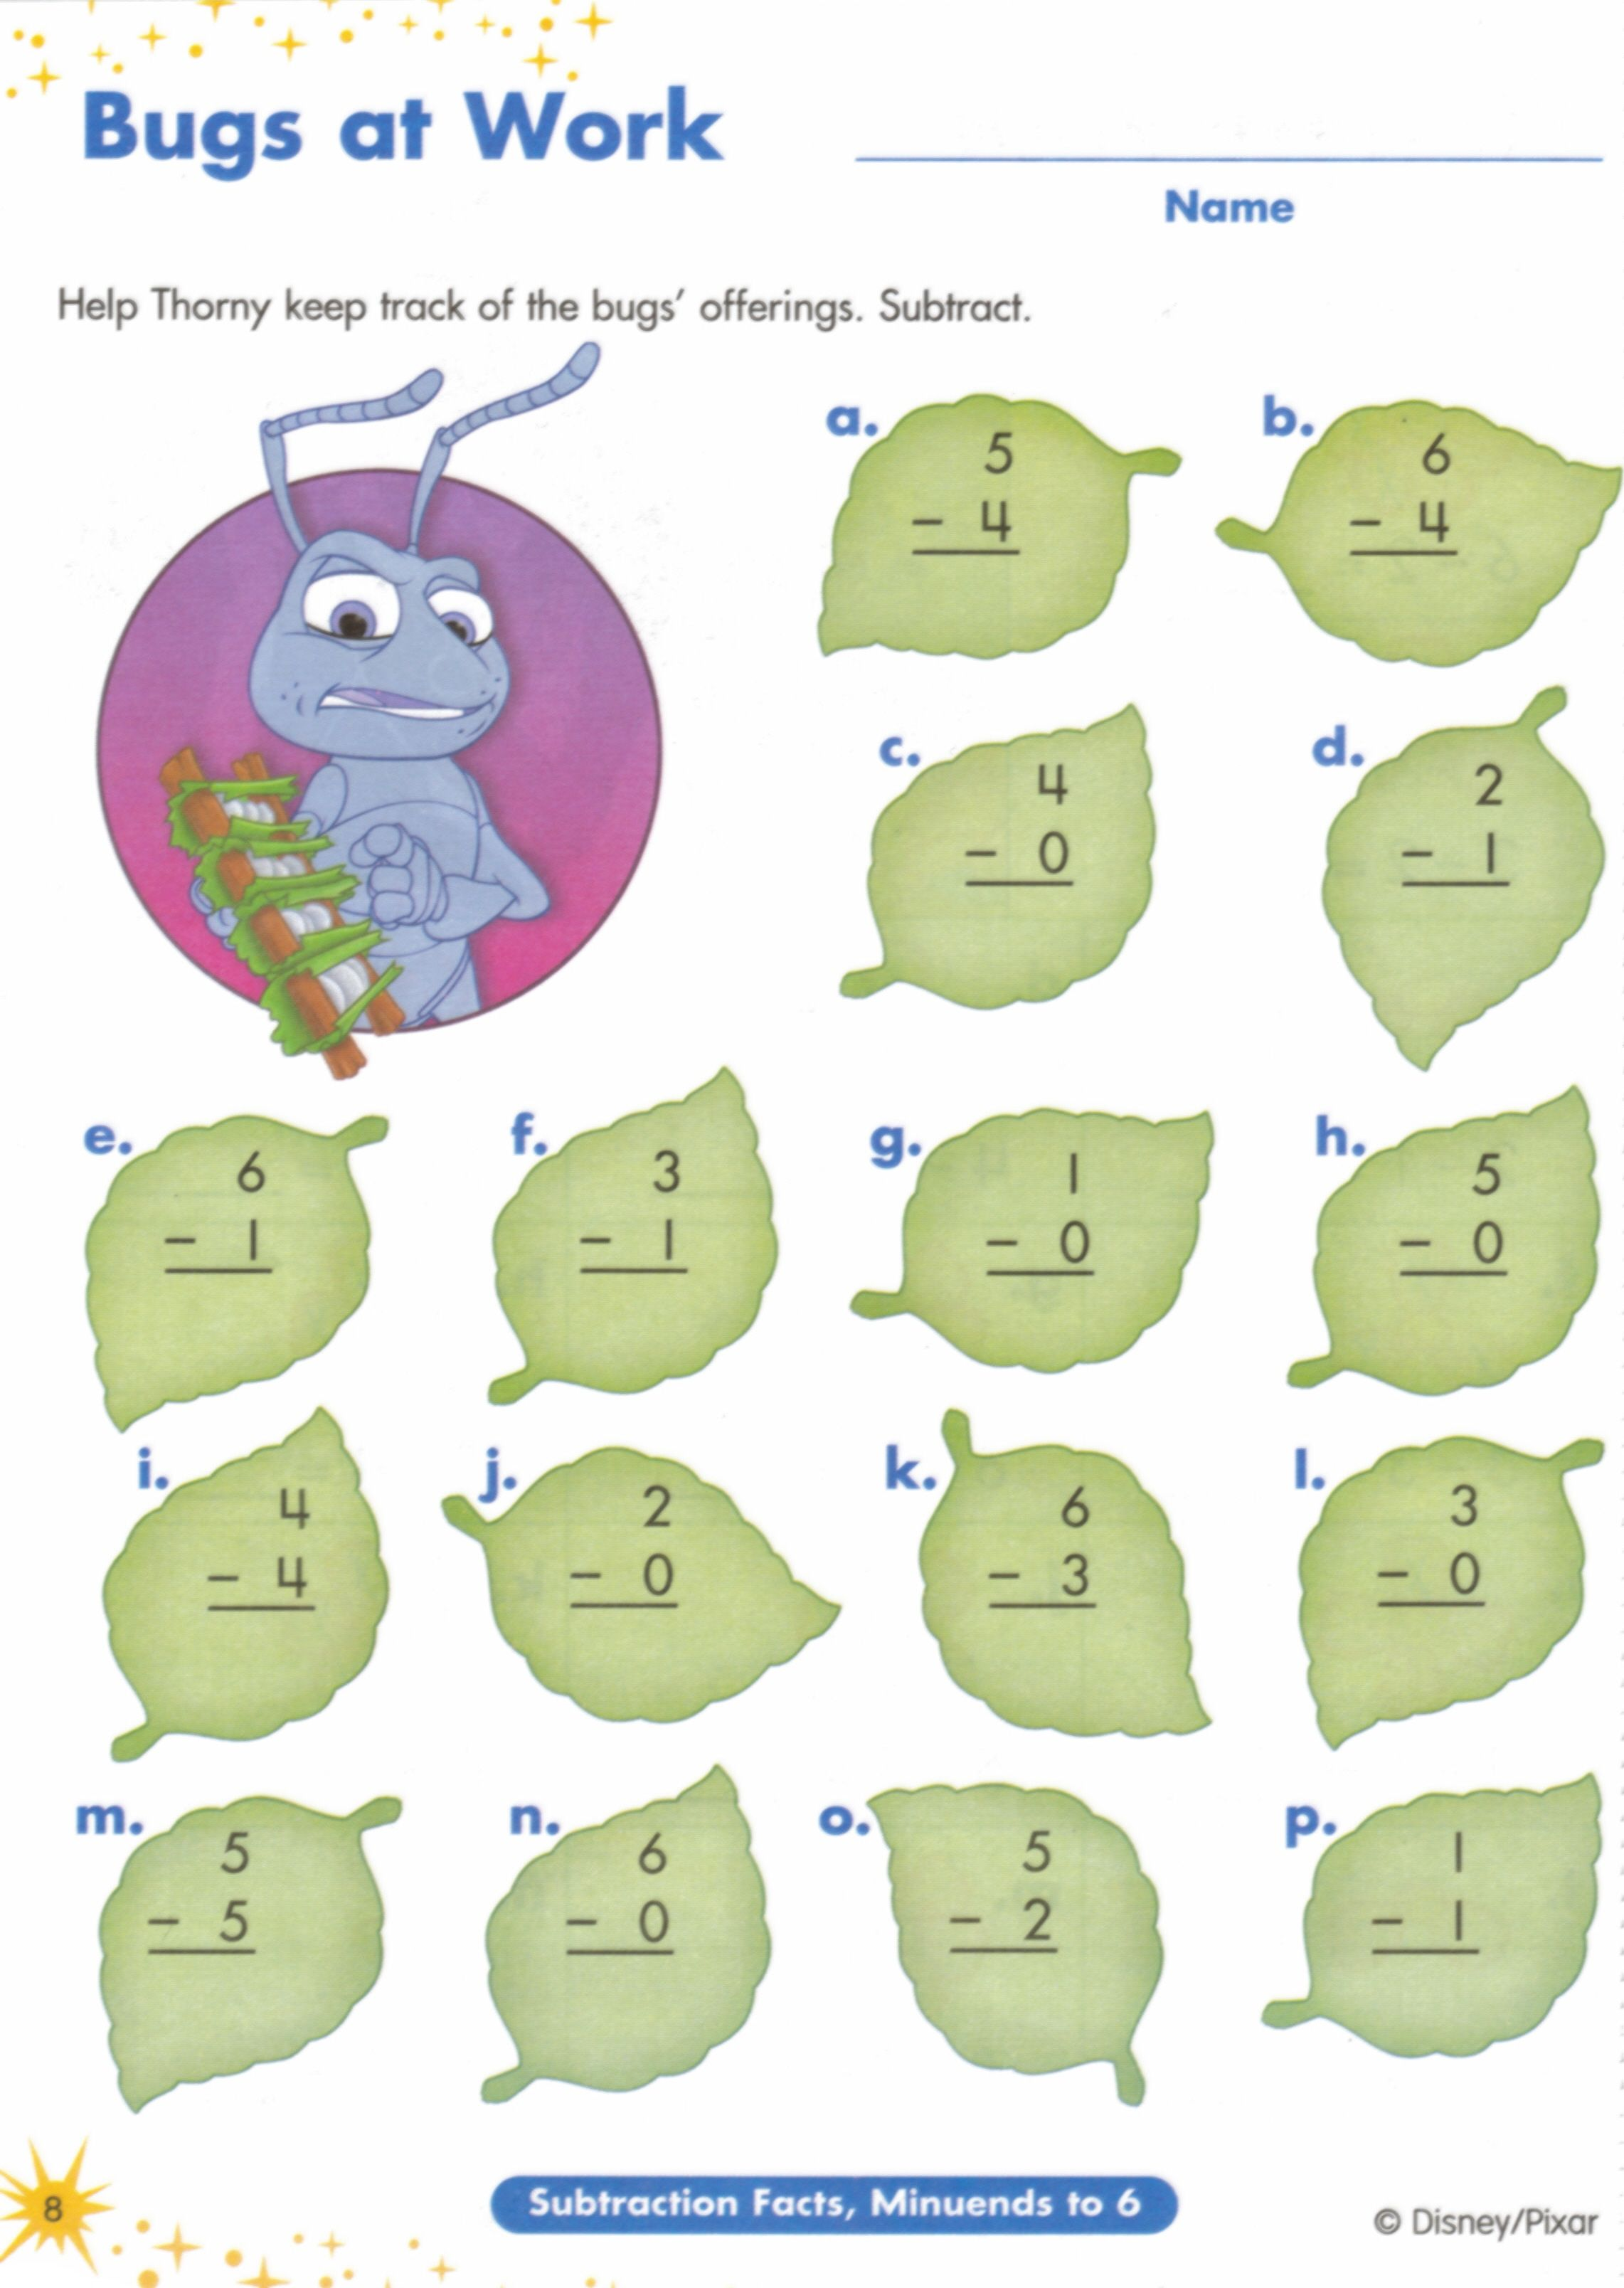 Proatmealus  Gorgeous  Images About Worksheets On Pinterest  Fun Facts For Kids  With Goodlooking  Images About Worksheets On Pinterest  Fun Facts For Kids Earth Day Worksheets And Jungles With Adorable Emergency Preparedness Merit Badge Worksheet Answers Also Letter W Worksheets For Preschool In Addition Dividing A Polynomial By A Monomial Worksheet And Transversal Worksheets As Well As Cell Cycle Worksheets Additionally Th Grade Math Fractions Worksheets From Pinterestcom With Proatmealus  Goodlooking  Images About Worksheets On Pinterest  Fun Facts For Kids  With Adorable  Images About Worksheets On Pinterest  Fun Facts For Kids Earth Day Worksheets And Jungles And Gorgeous Emergency Preparedness Merit Badge Worksheet Answers Also Letter W Worksheets For Preschool In Addition Dividing A Polynomial By A Monomial Worksheet From Pinterestcom